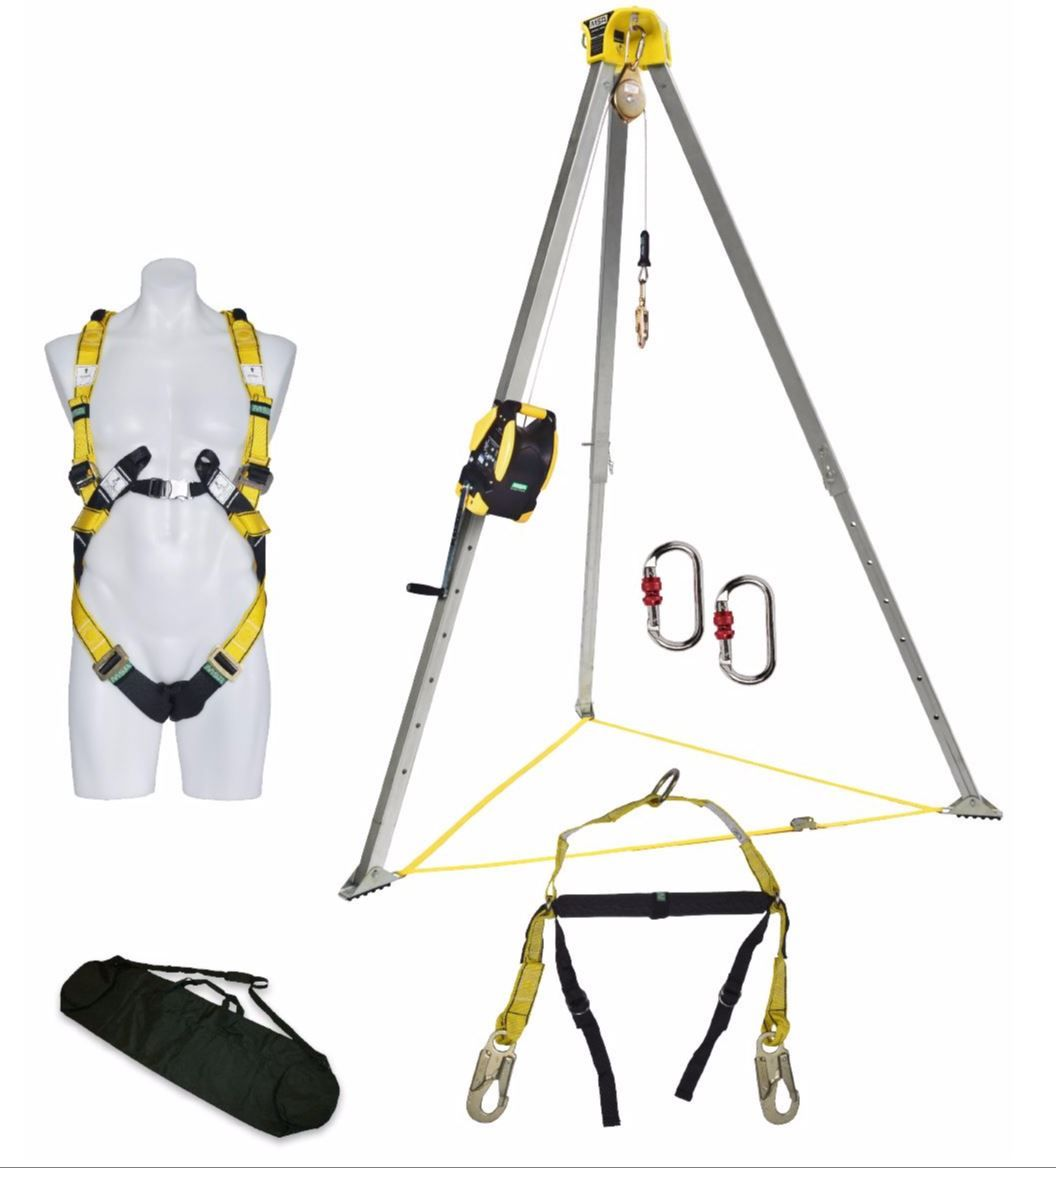 MSA Confined Space Entry Kit with Workman Rescuer